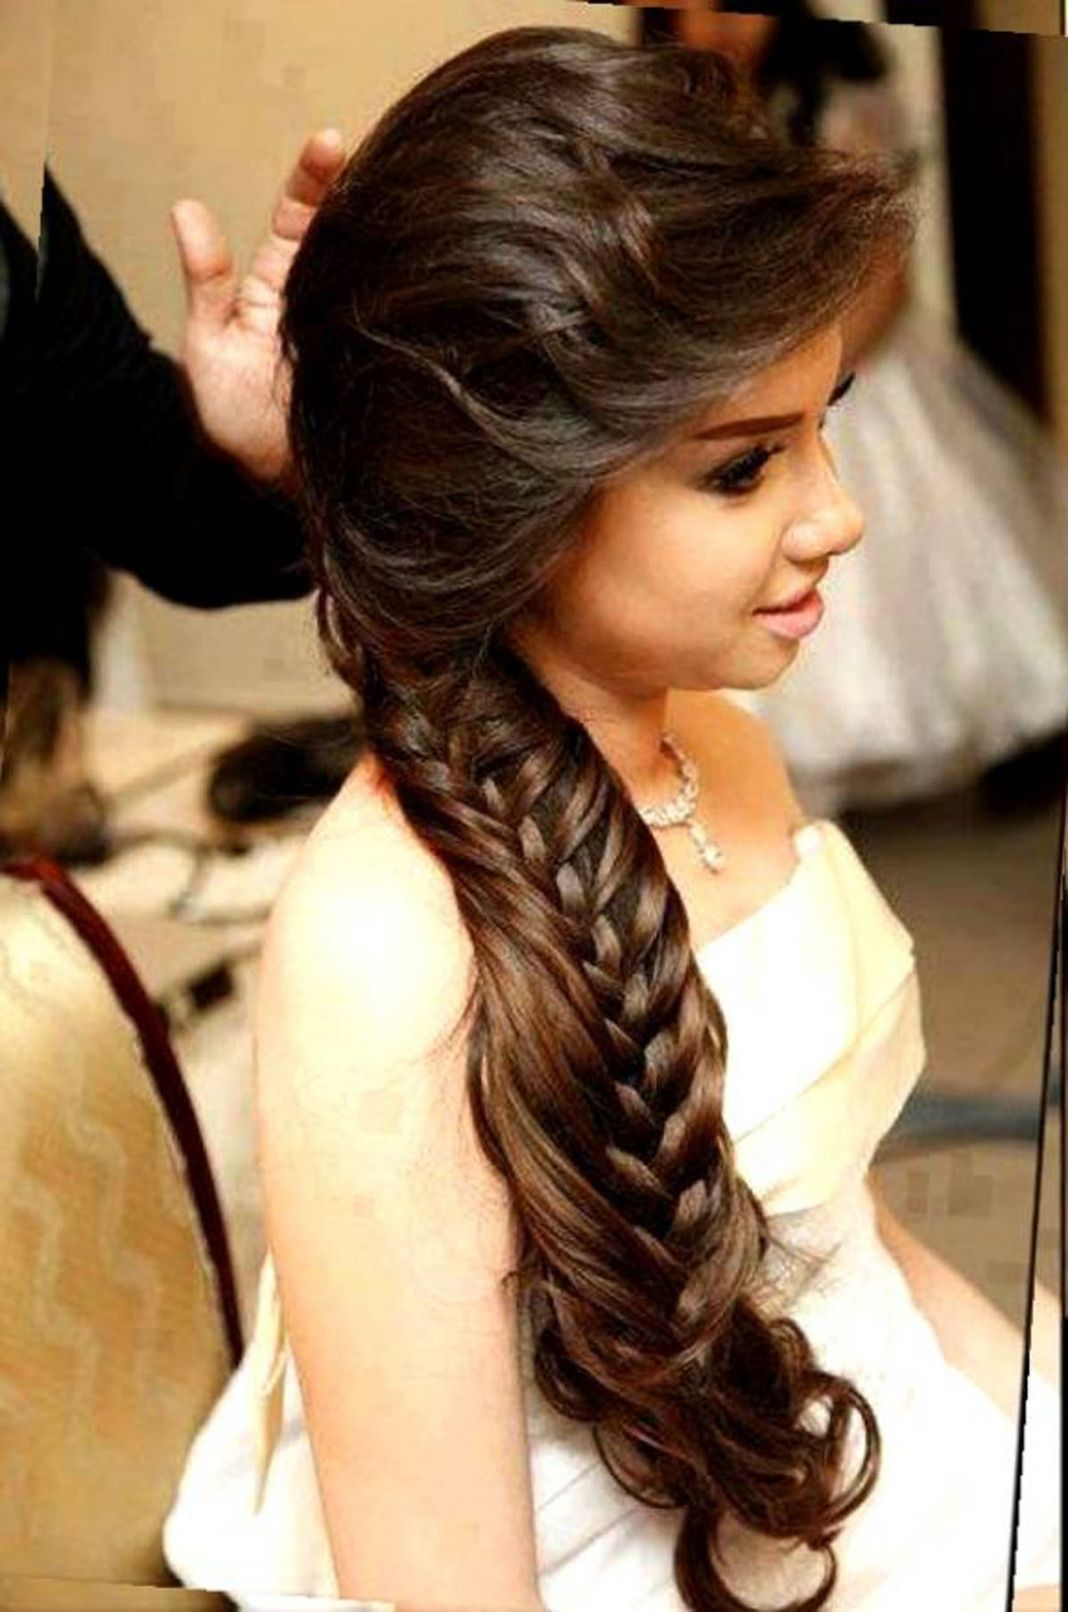 Wedding Hairstyles For Long Faces Minimalist Hairstyles For Long Hair Round Face Indian H In 2020 Long Face Hairstyles Indian Wedding Hairstyles Hair Styles